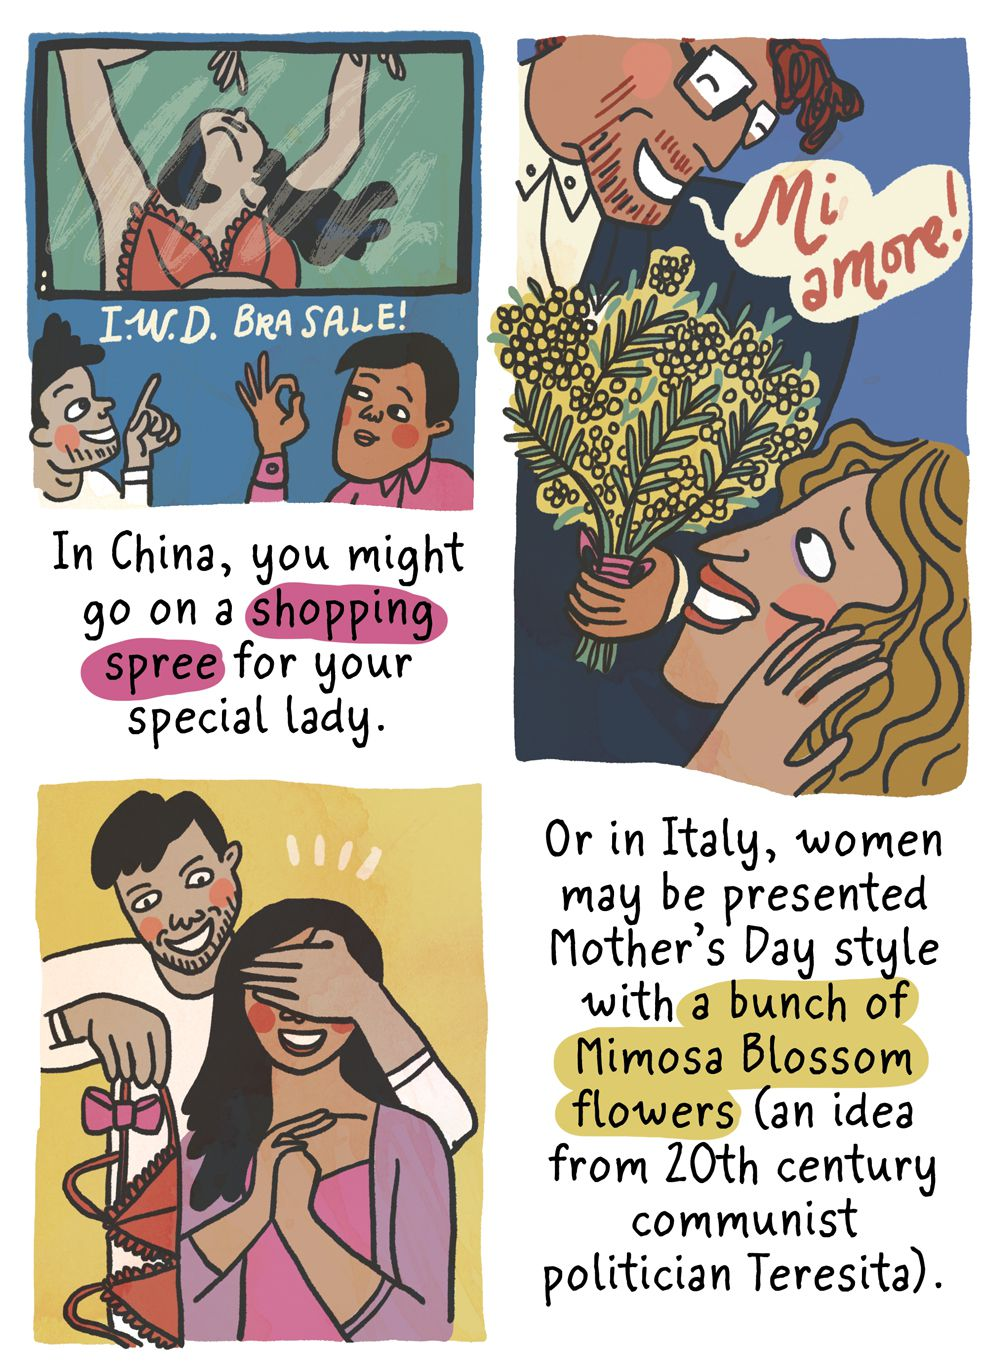 In China, you might go on a shopping spree for that special lady in your life. Or in Italy, women may be presented with a Mother's Day-style bunch of mimosa blossom flowers (an idea originally promoted by communist politician Teresita).